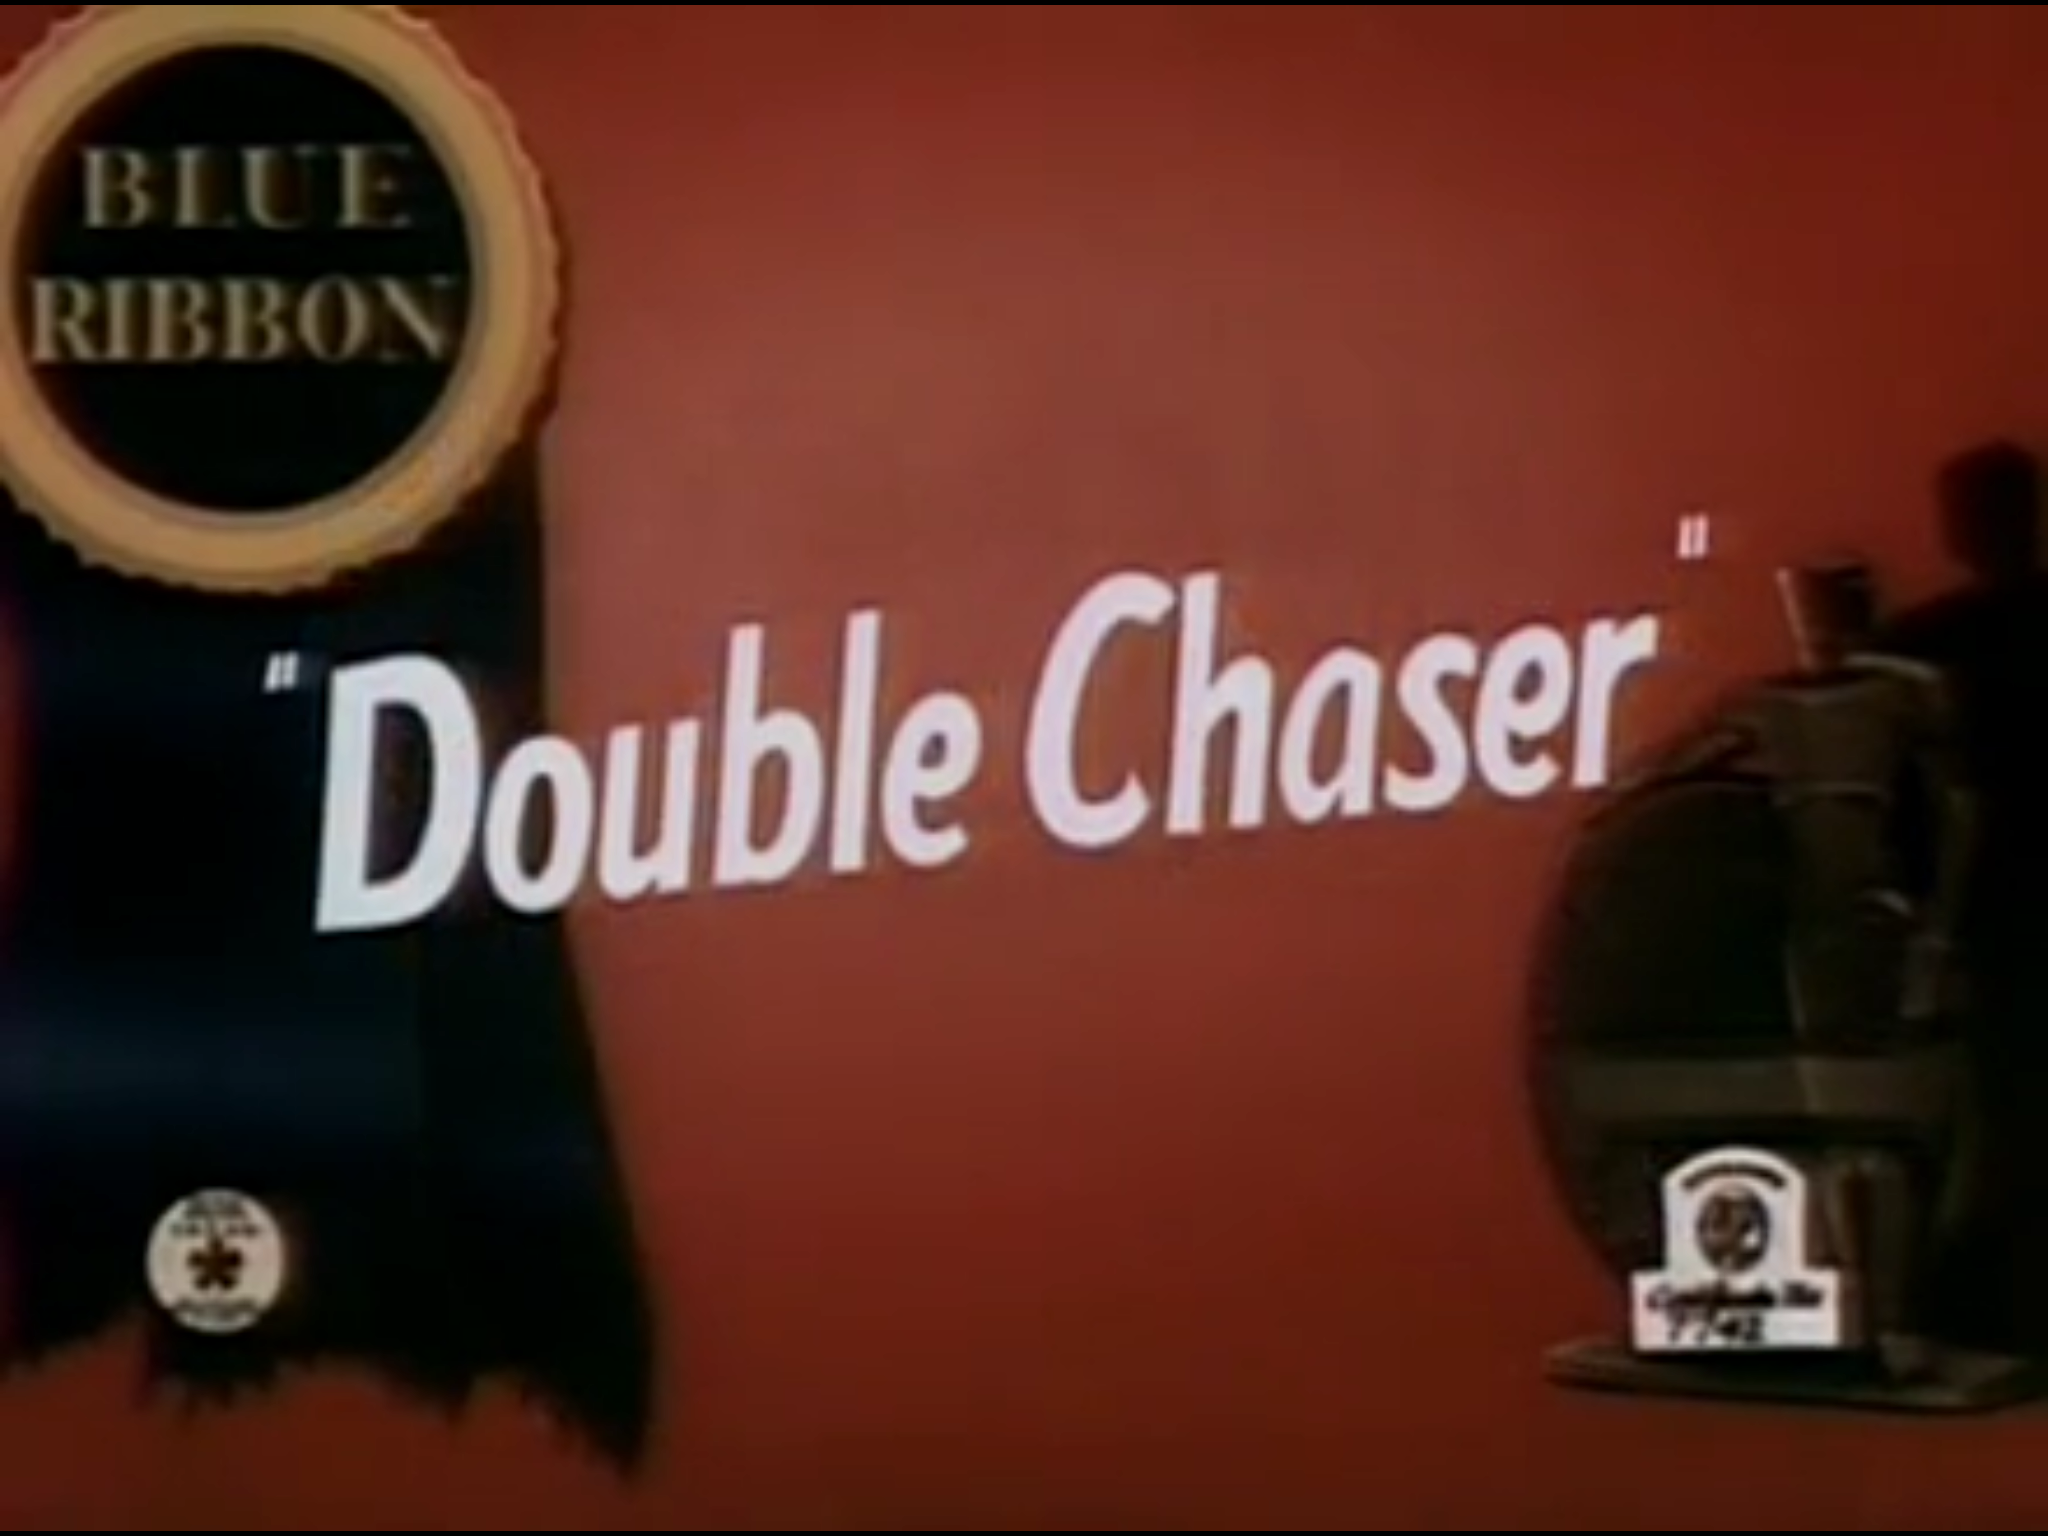 Double Chaser